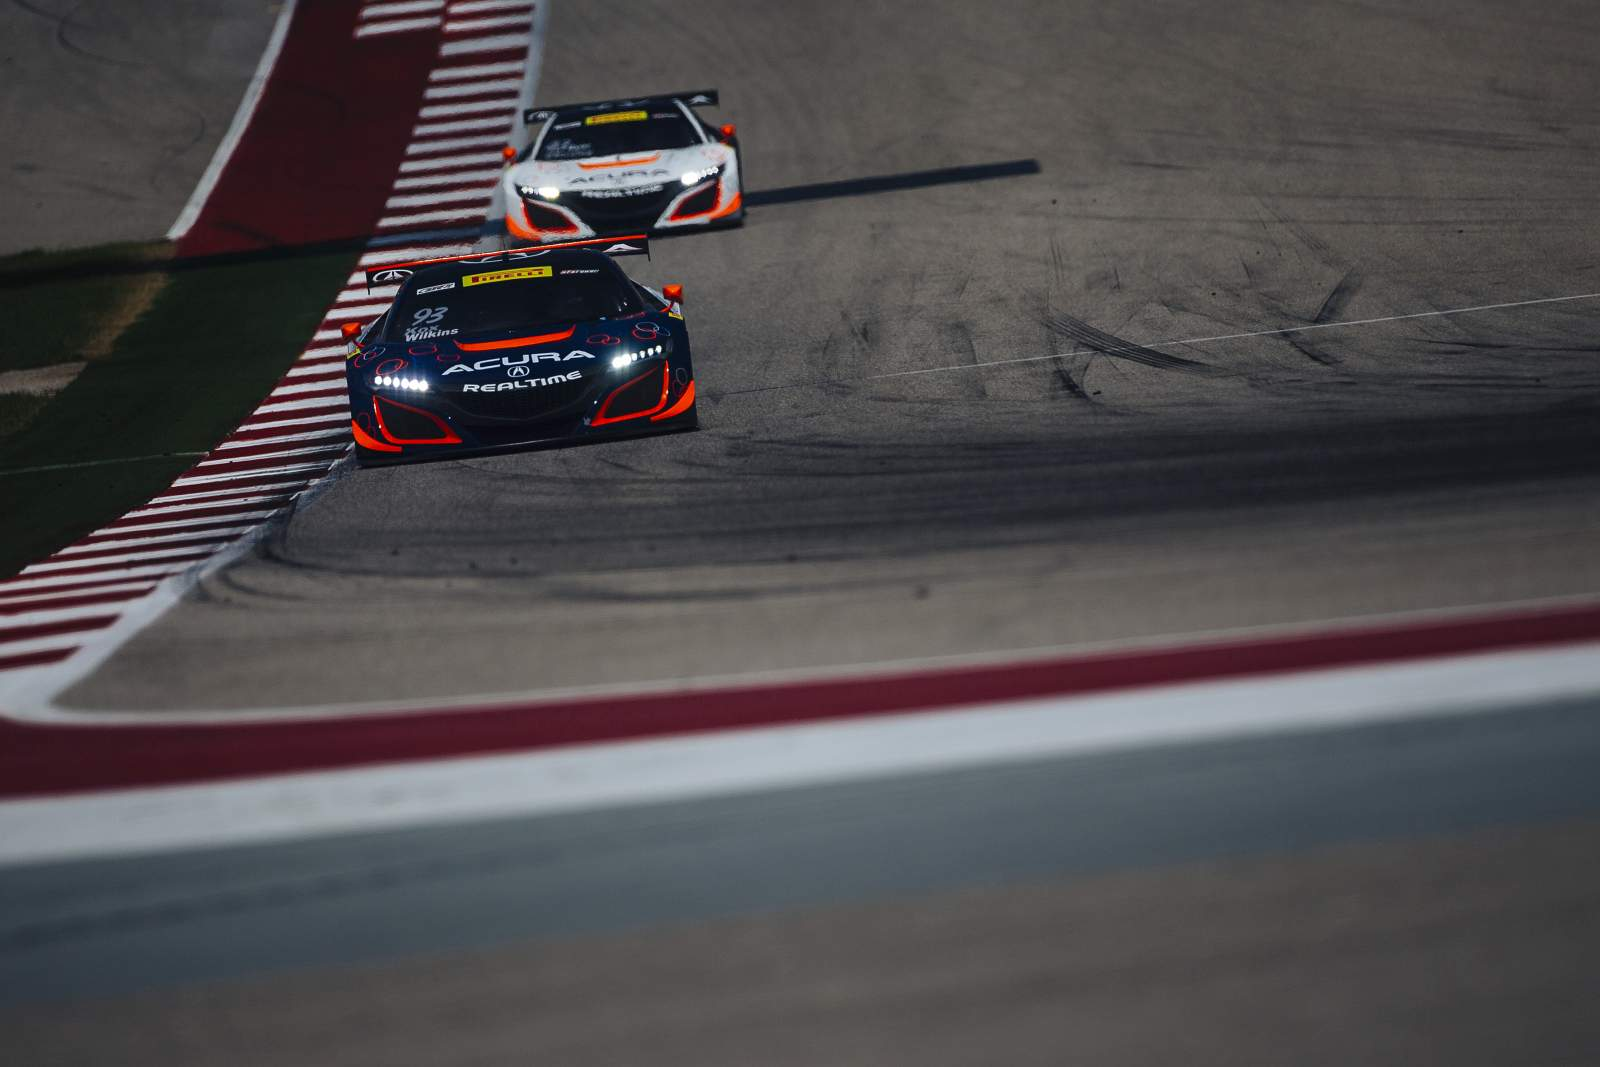 peter-kox-realtime-racing-pirelli-world-challenge-cota--015